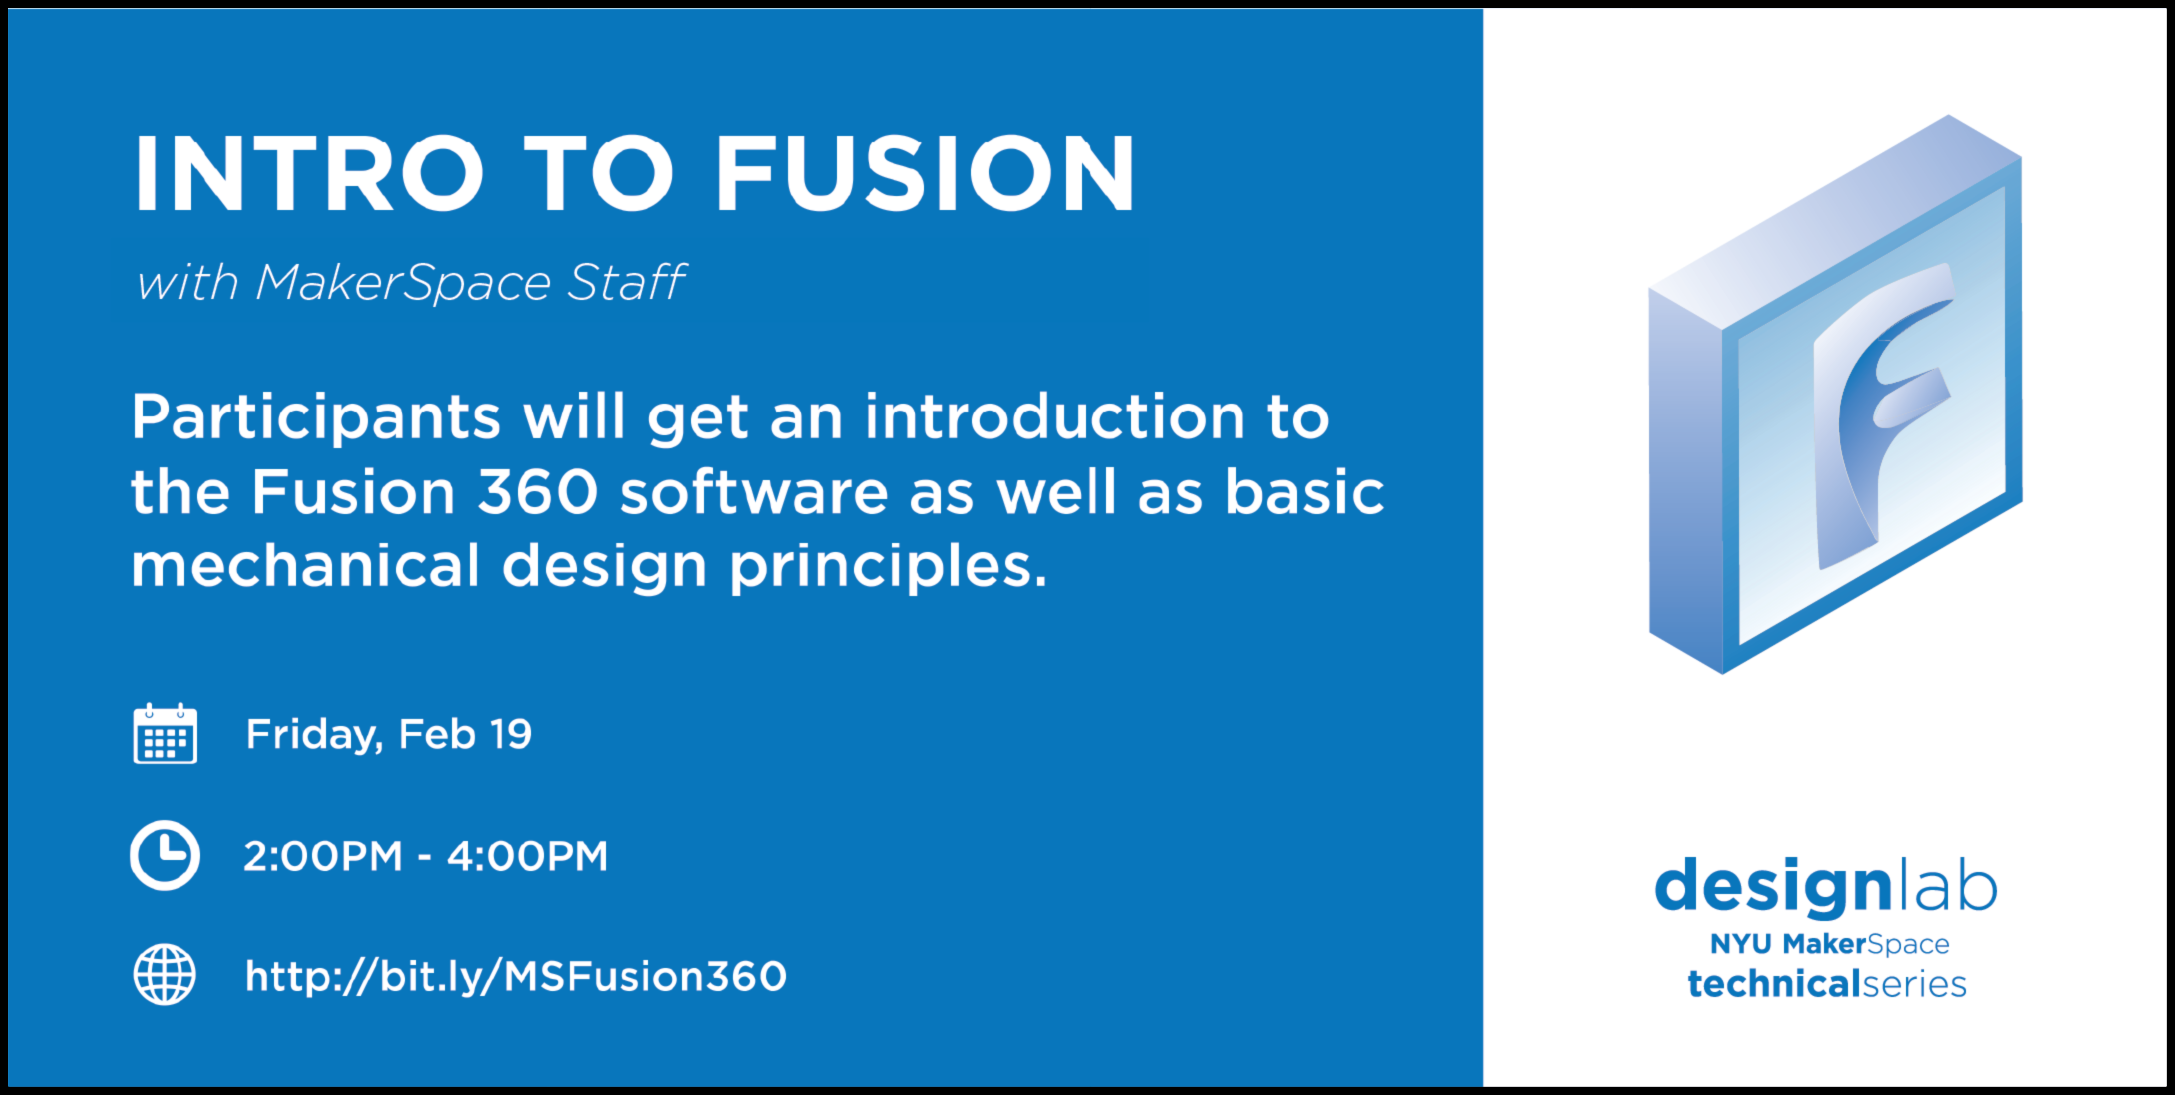 intro to fusion 360 flyer